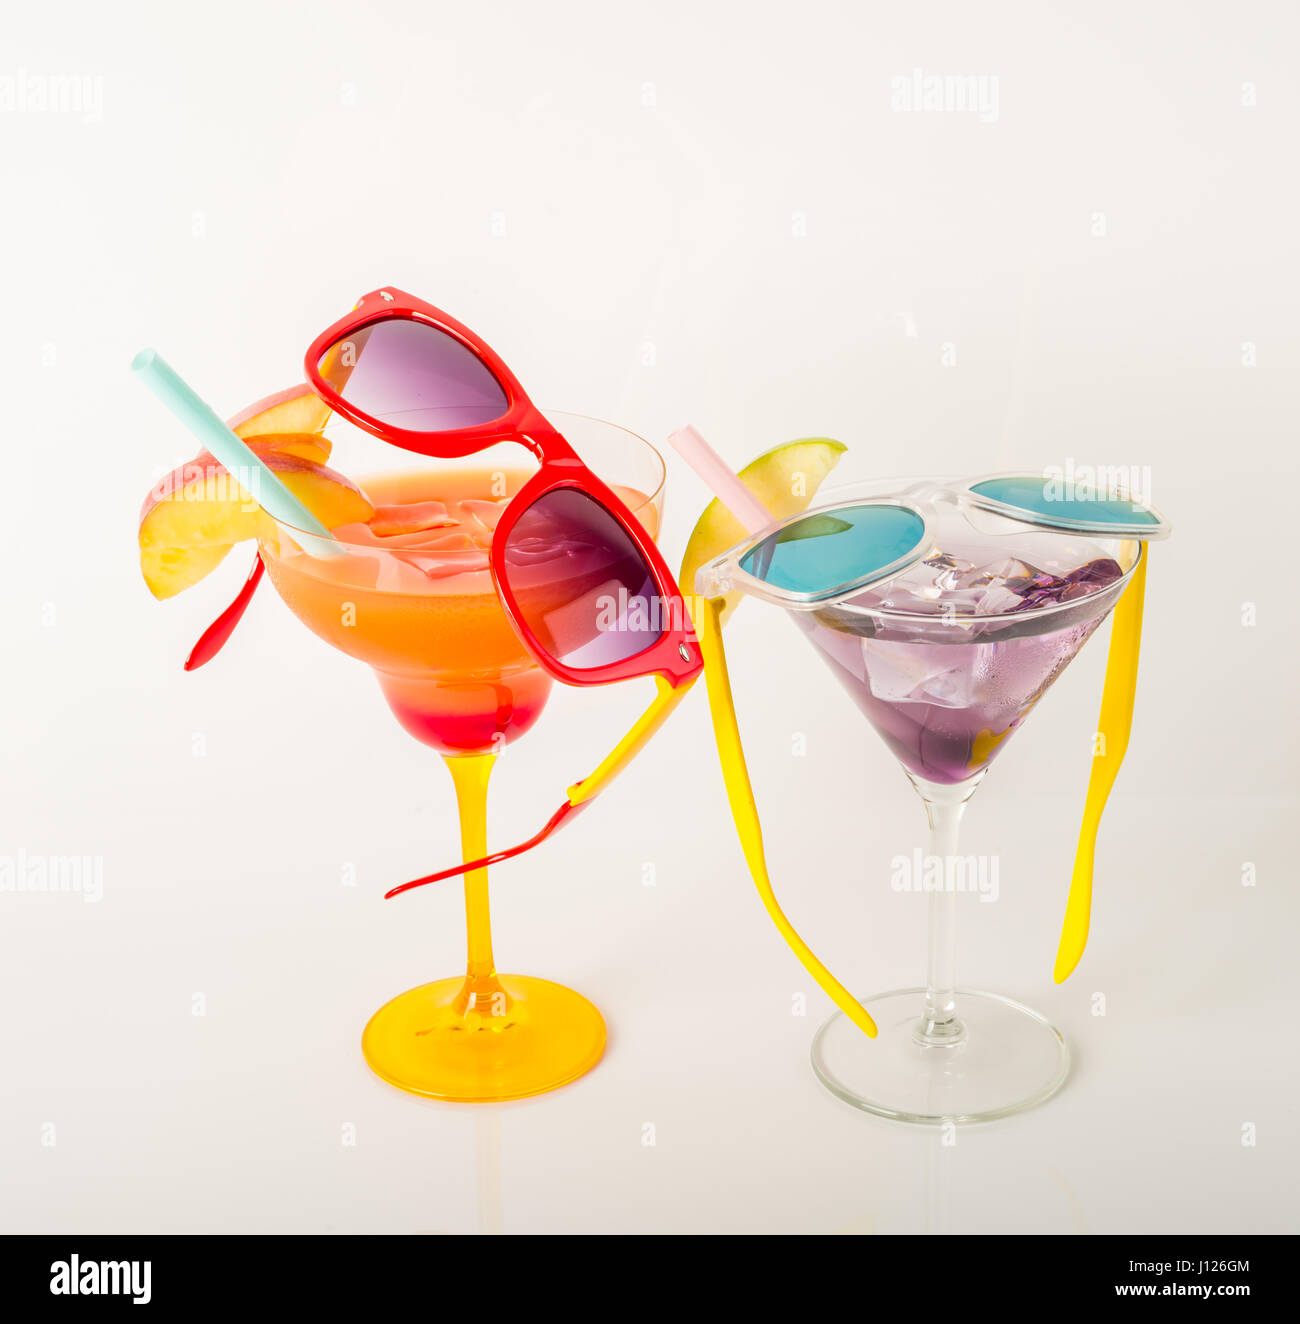 Drinks Decorated With Fruit Margarita And Martini Glasses